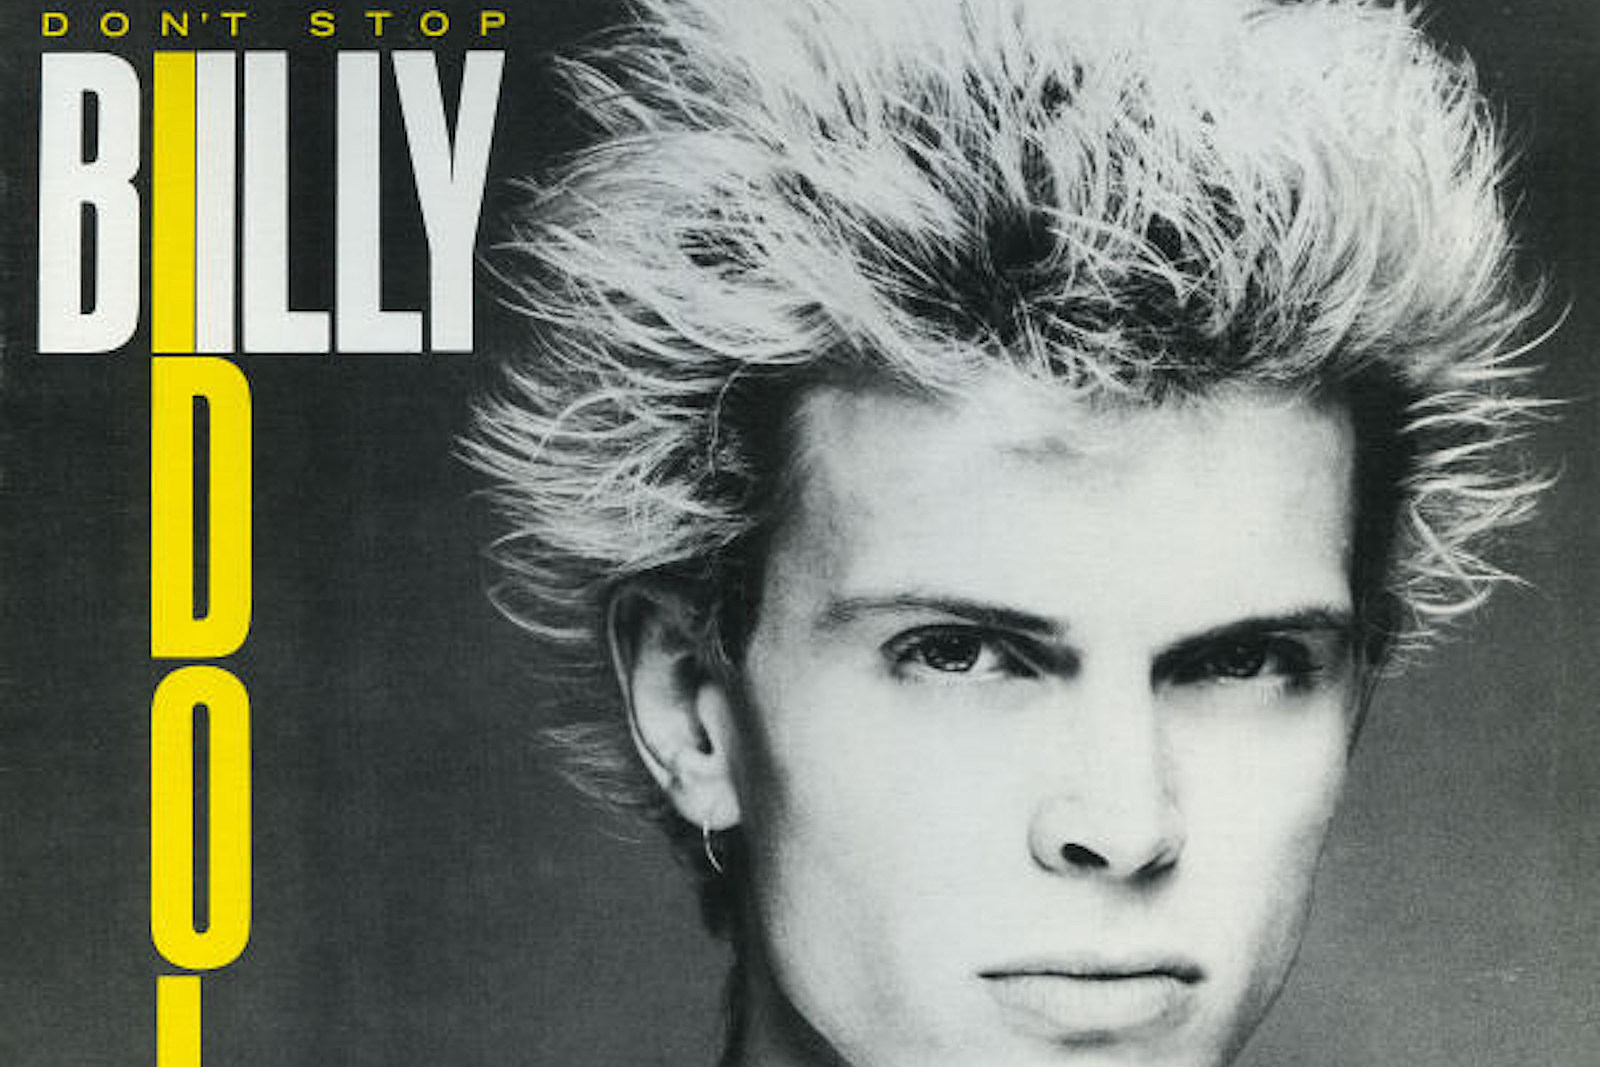 How Billy Idol Set Up His Solo Career With Debut EP 'Don't Stop'